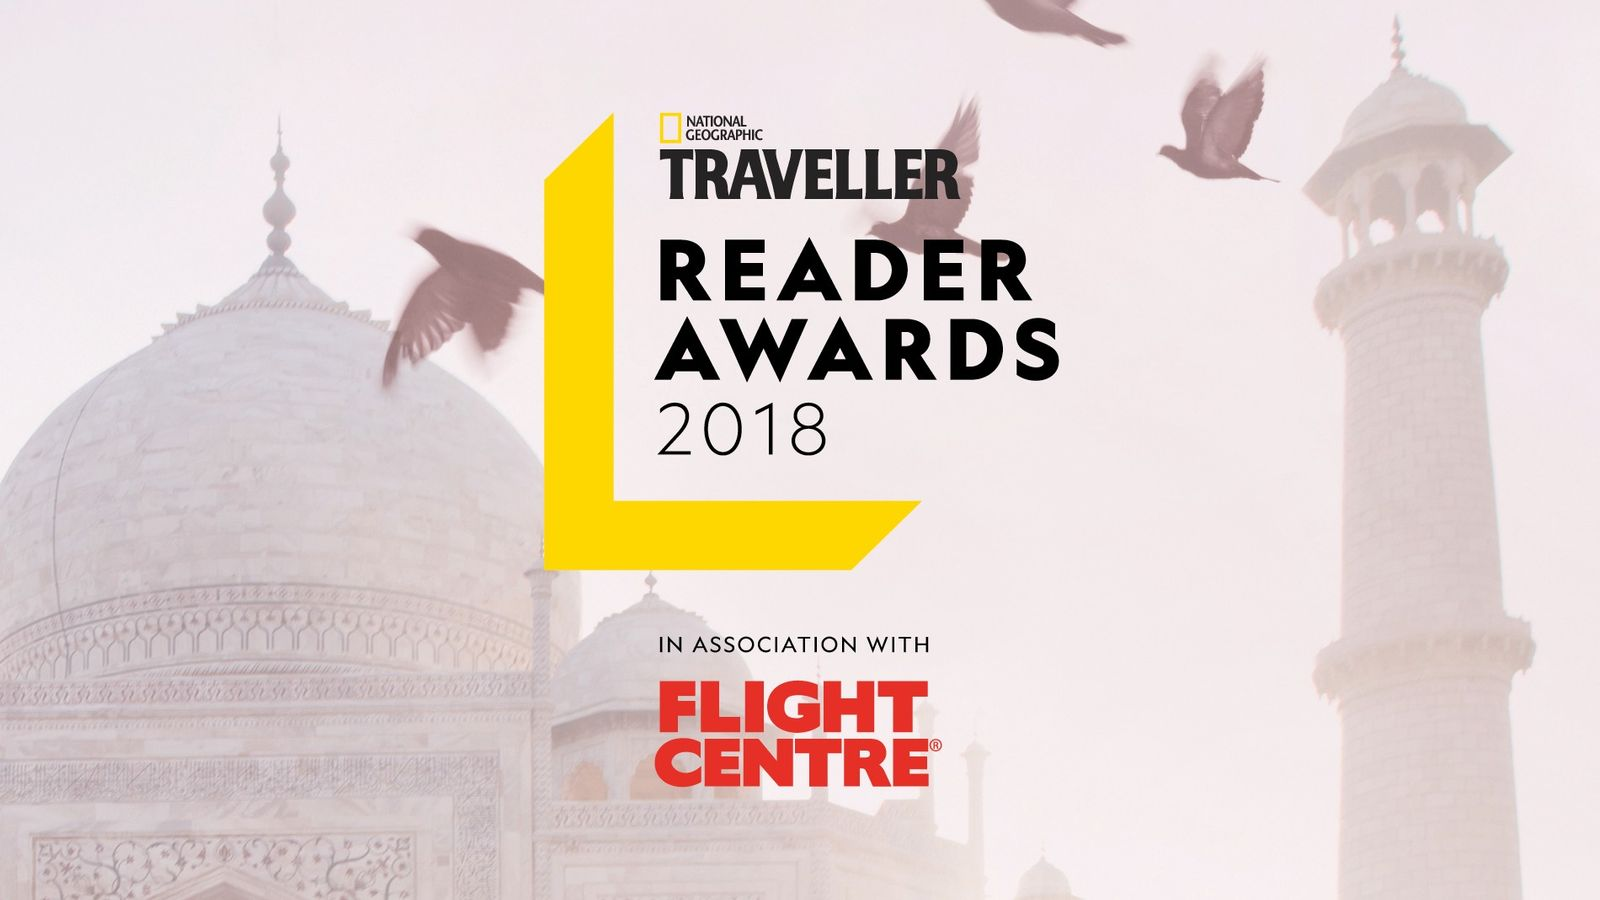 National Geographic Traveller Reader Awards 2018